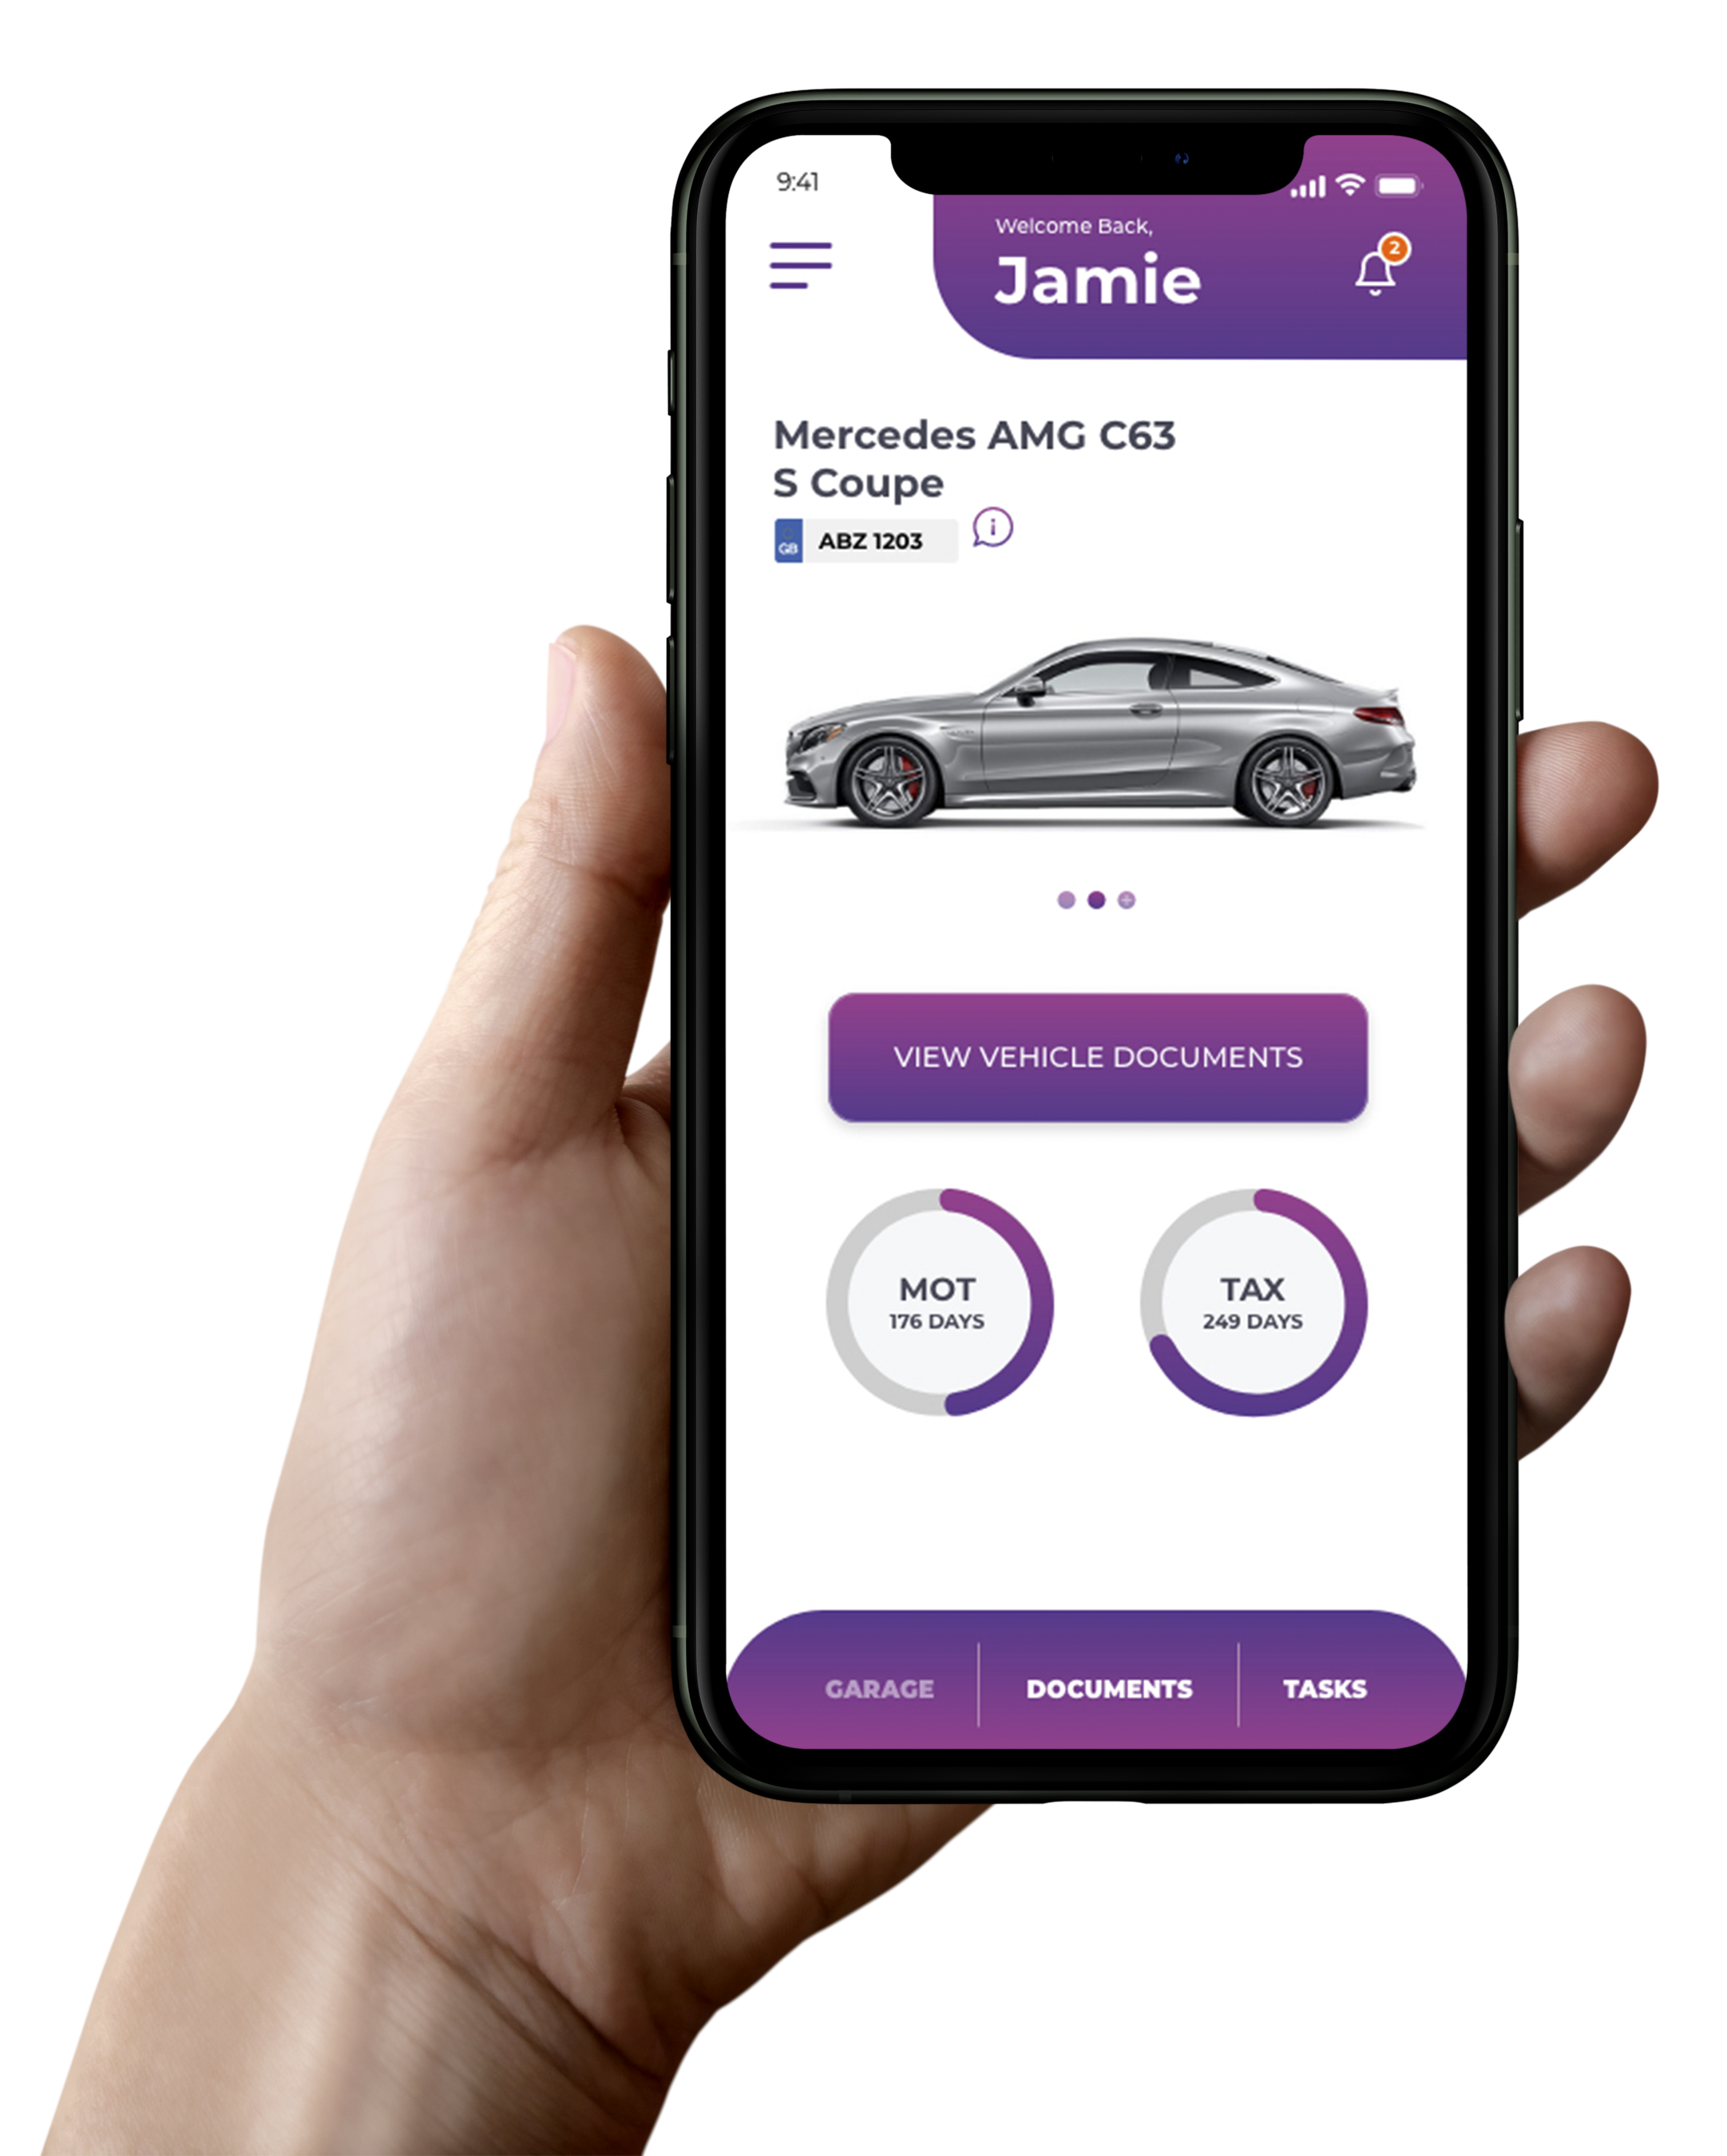 The Pocket Box App aims to solve several pain points for the everyday motorists